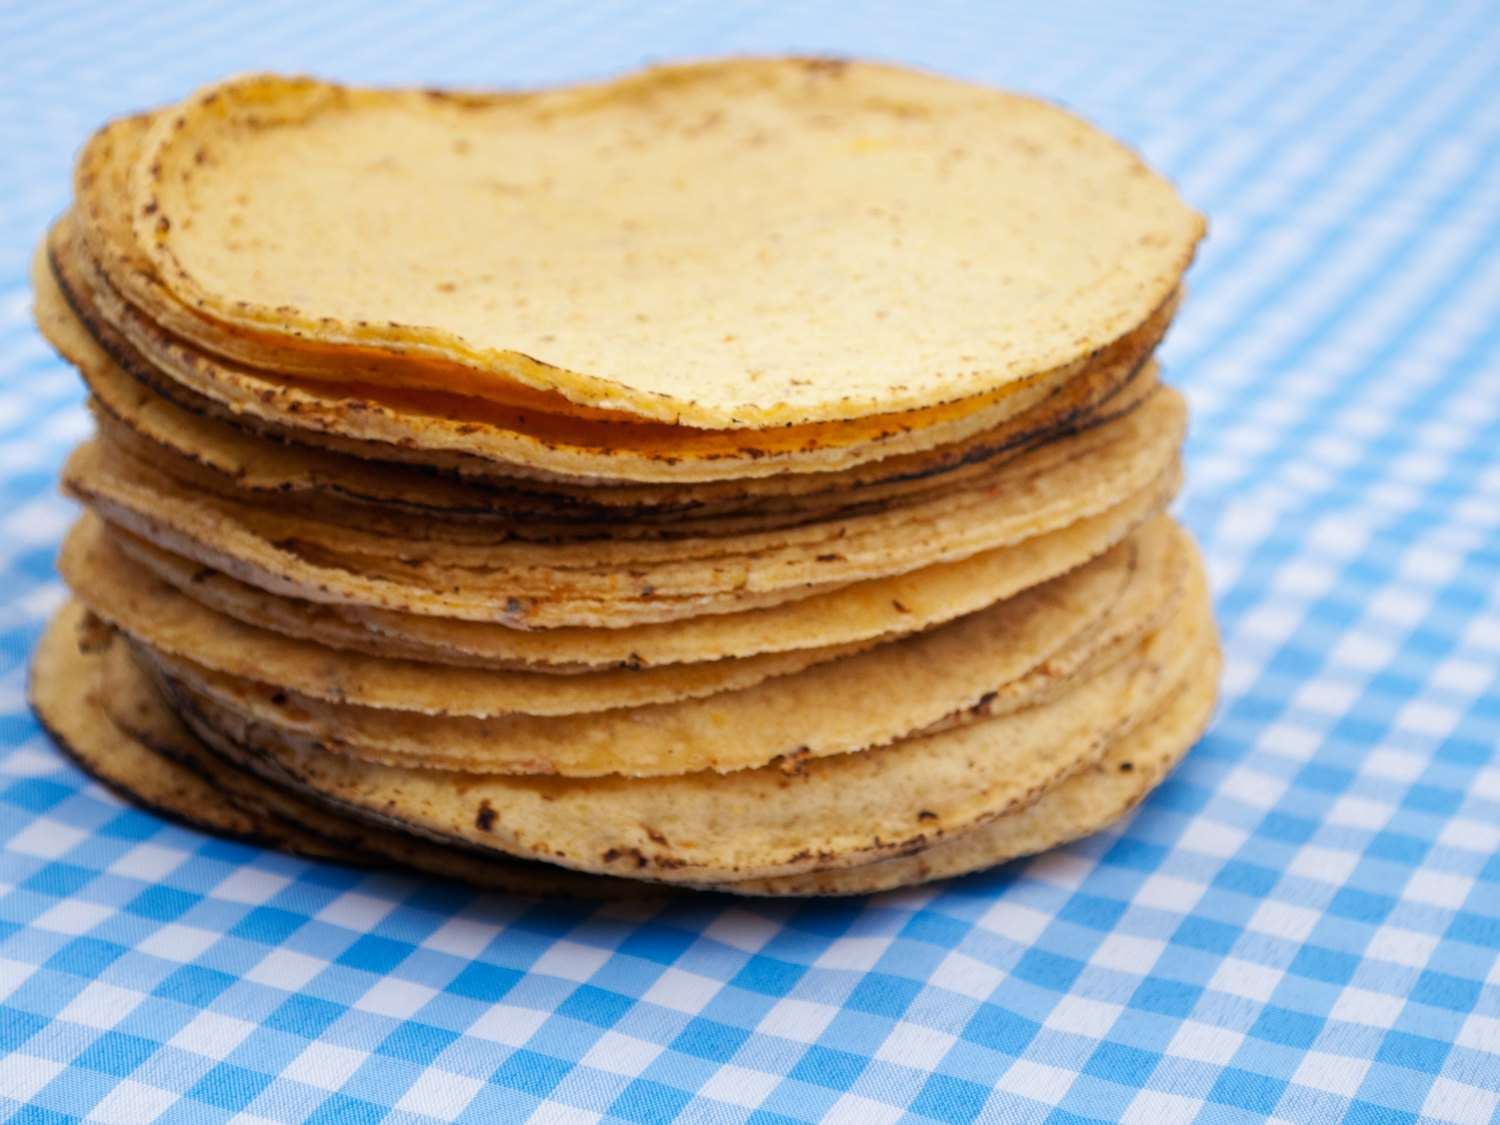 A stack of corn tortillas on a light blue checked tablecloth.